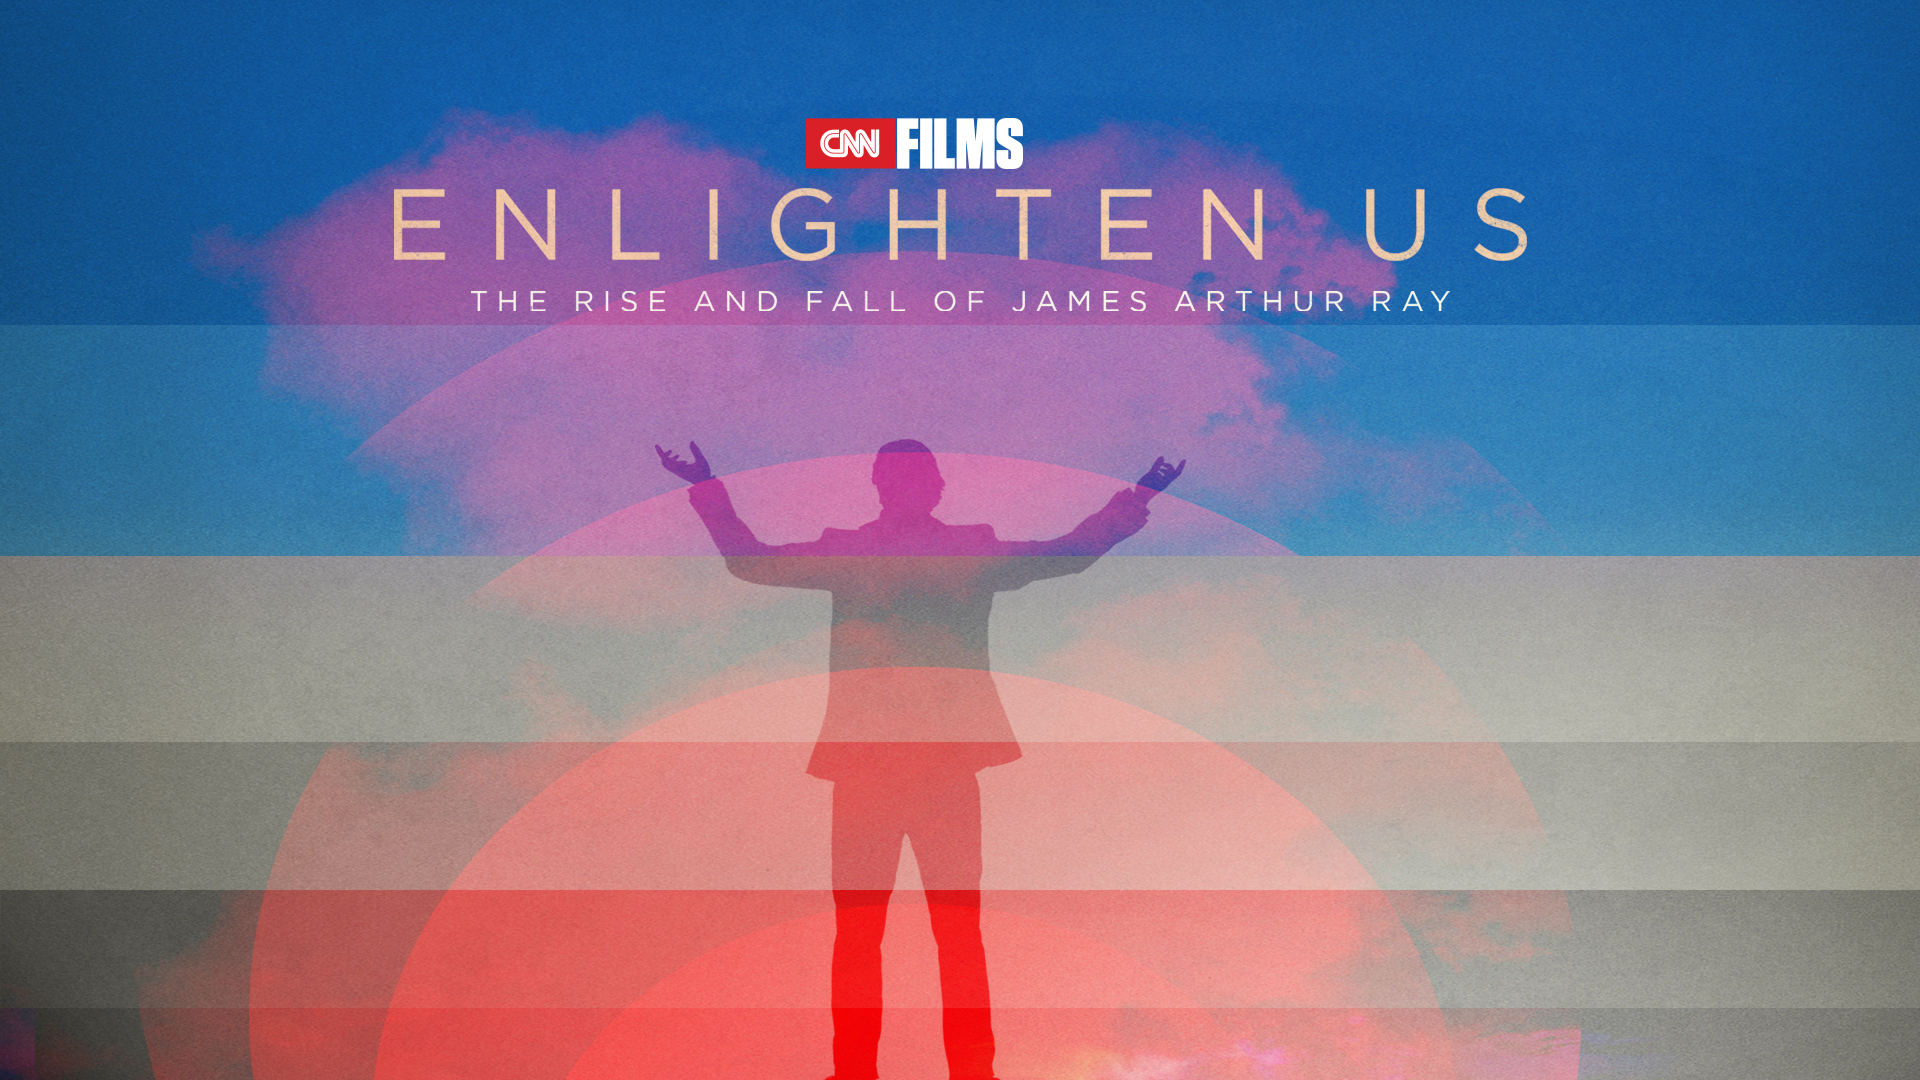 ENLIGHTEN US: The Rise and Fall of James Arthur Ray Premiere Moves to December 03